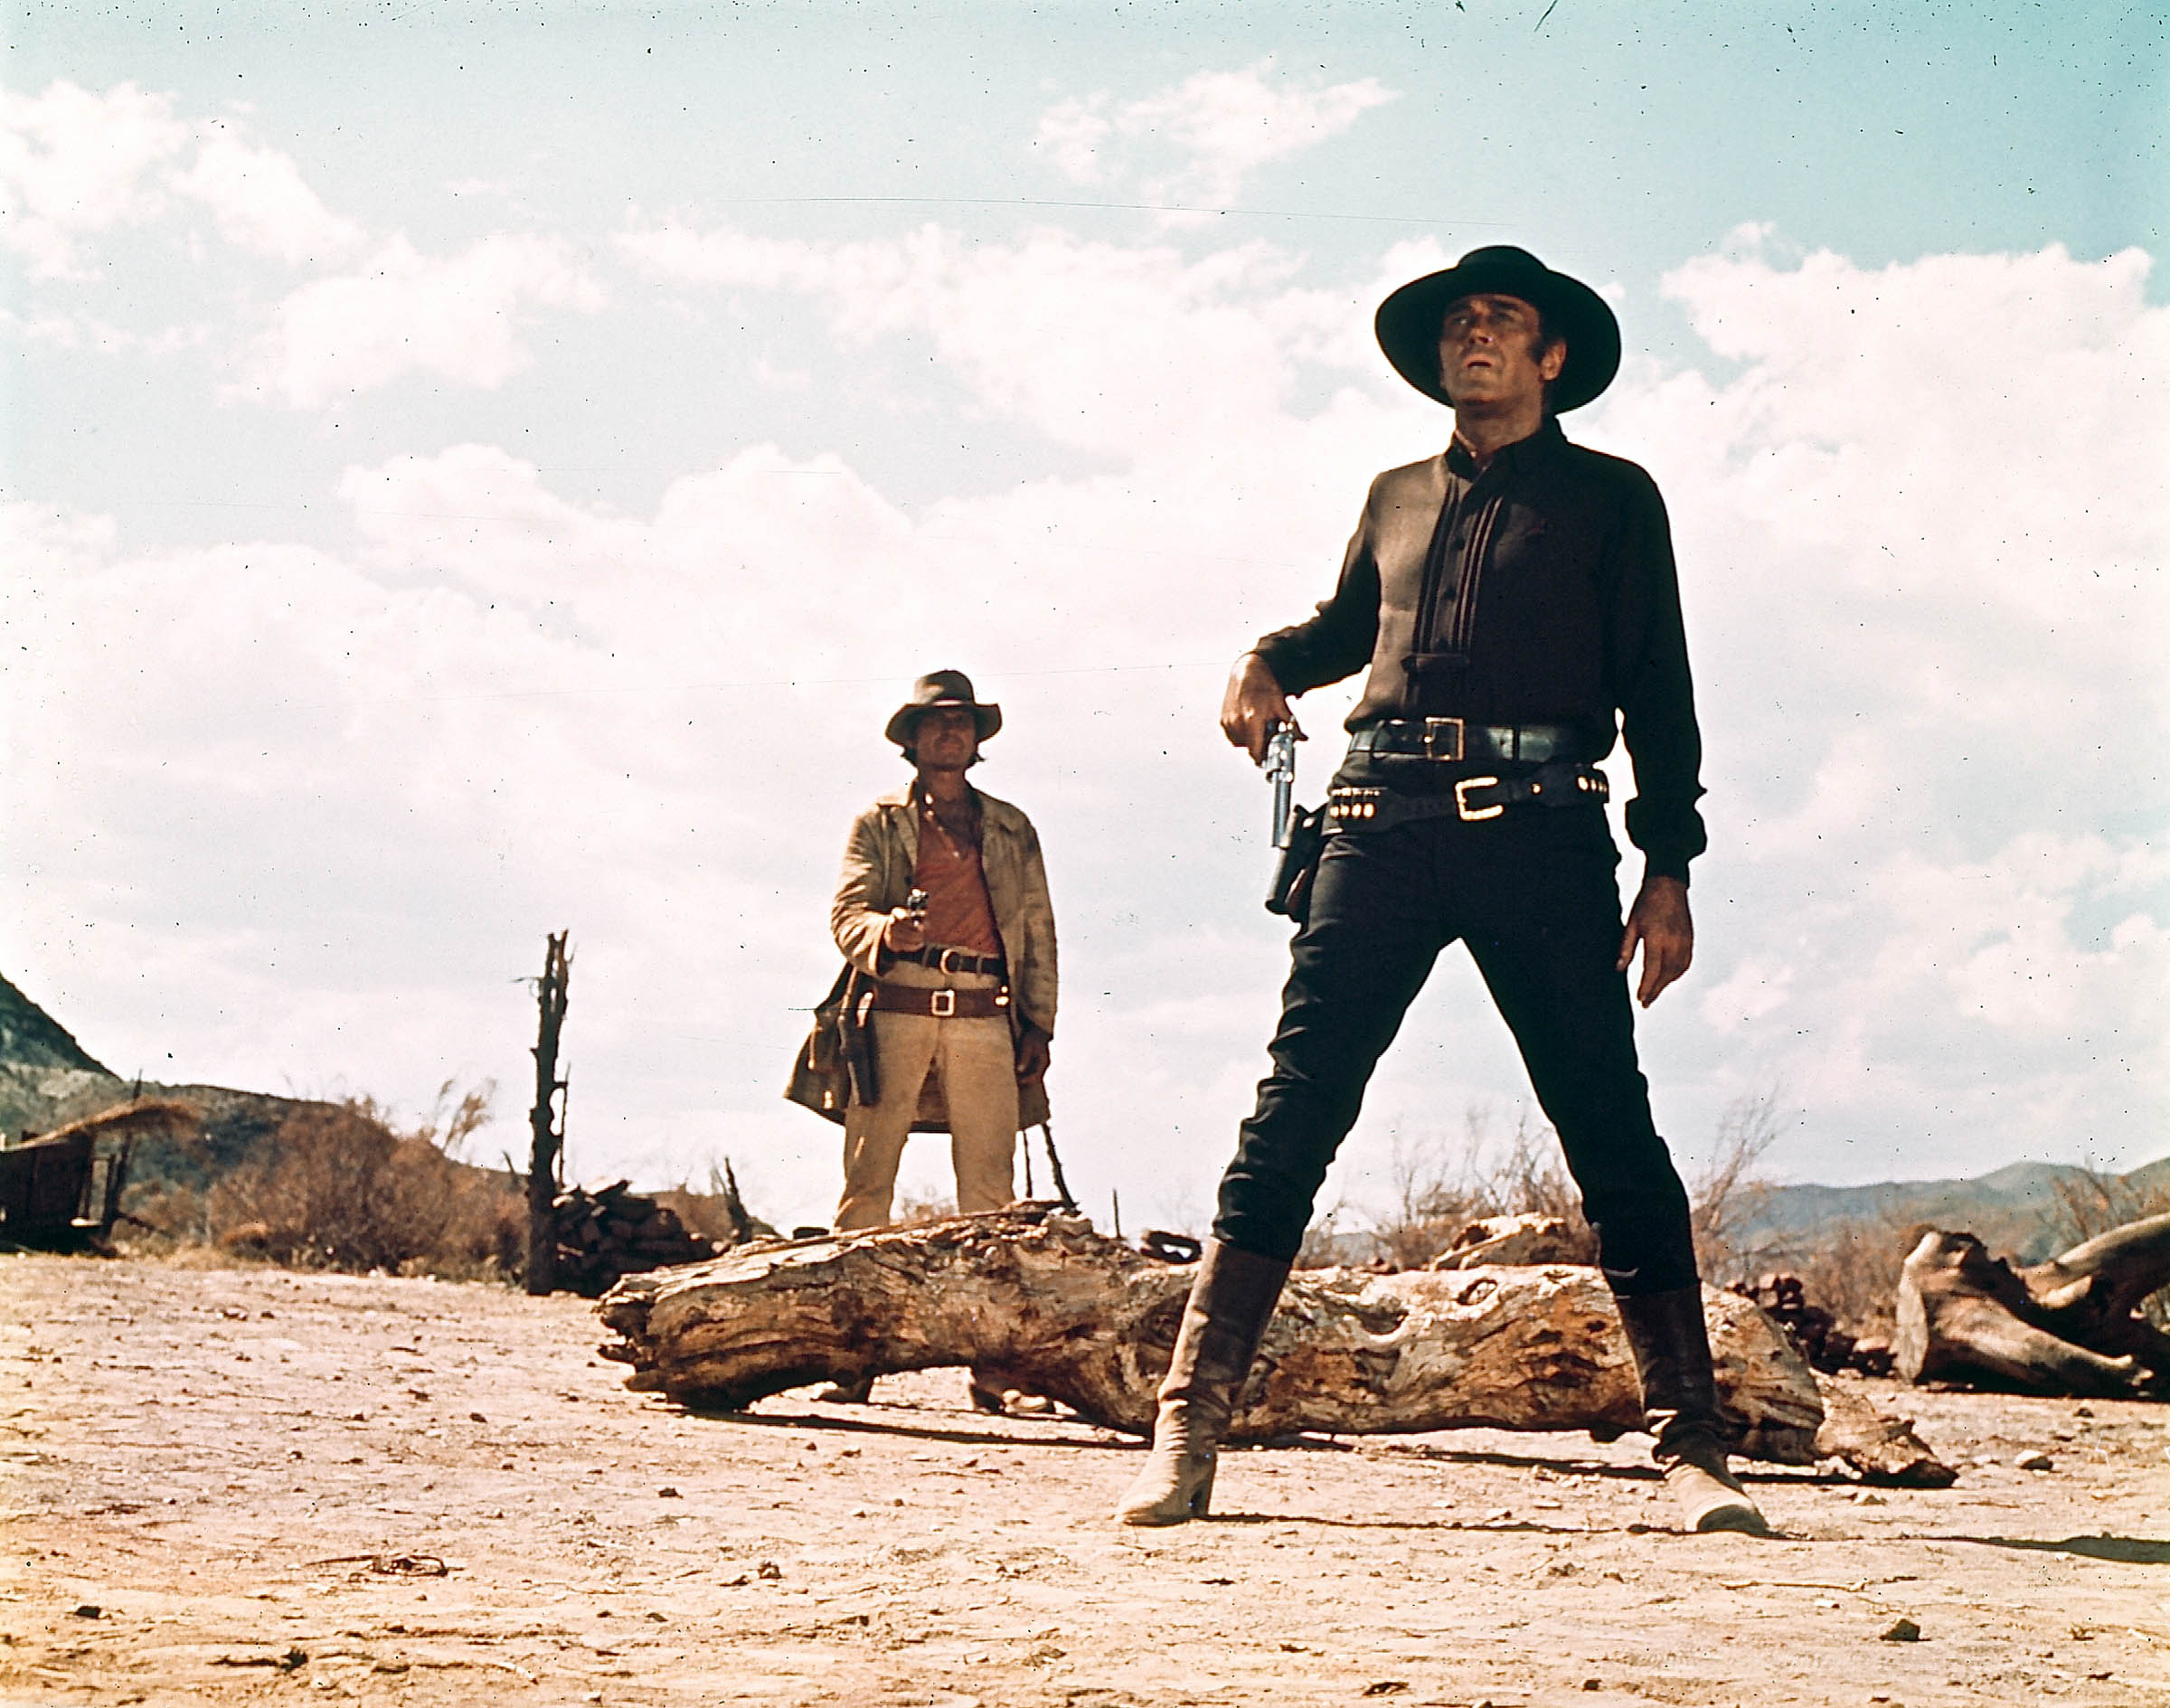 Western 019-once-upon-a-time-in-the-west-theredlist